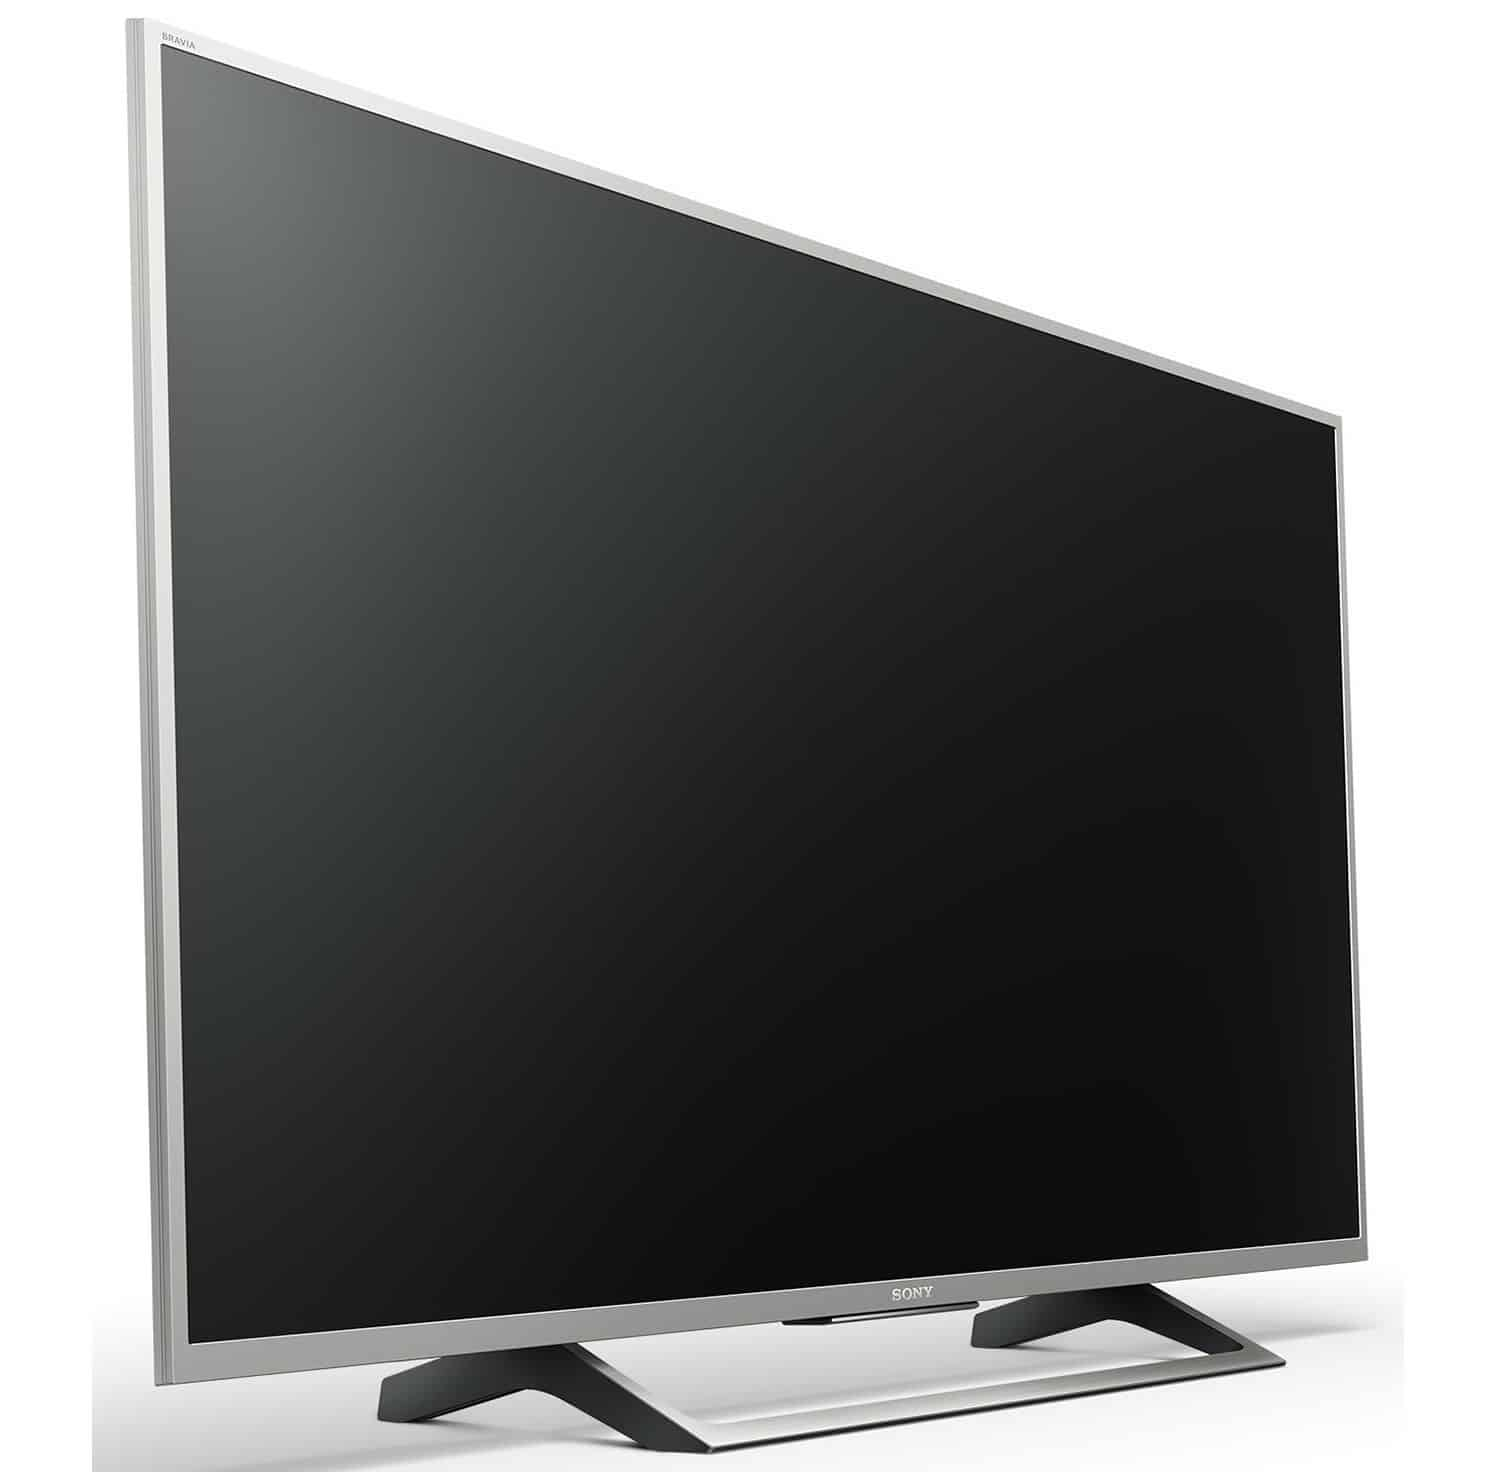 Sony Bravia - Free downloads and reviews - download.cnet.com